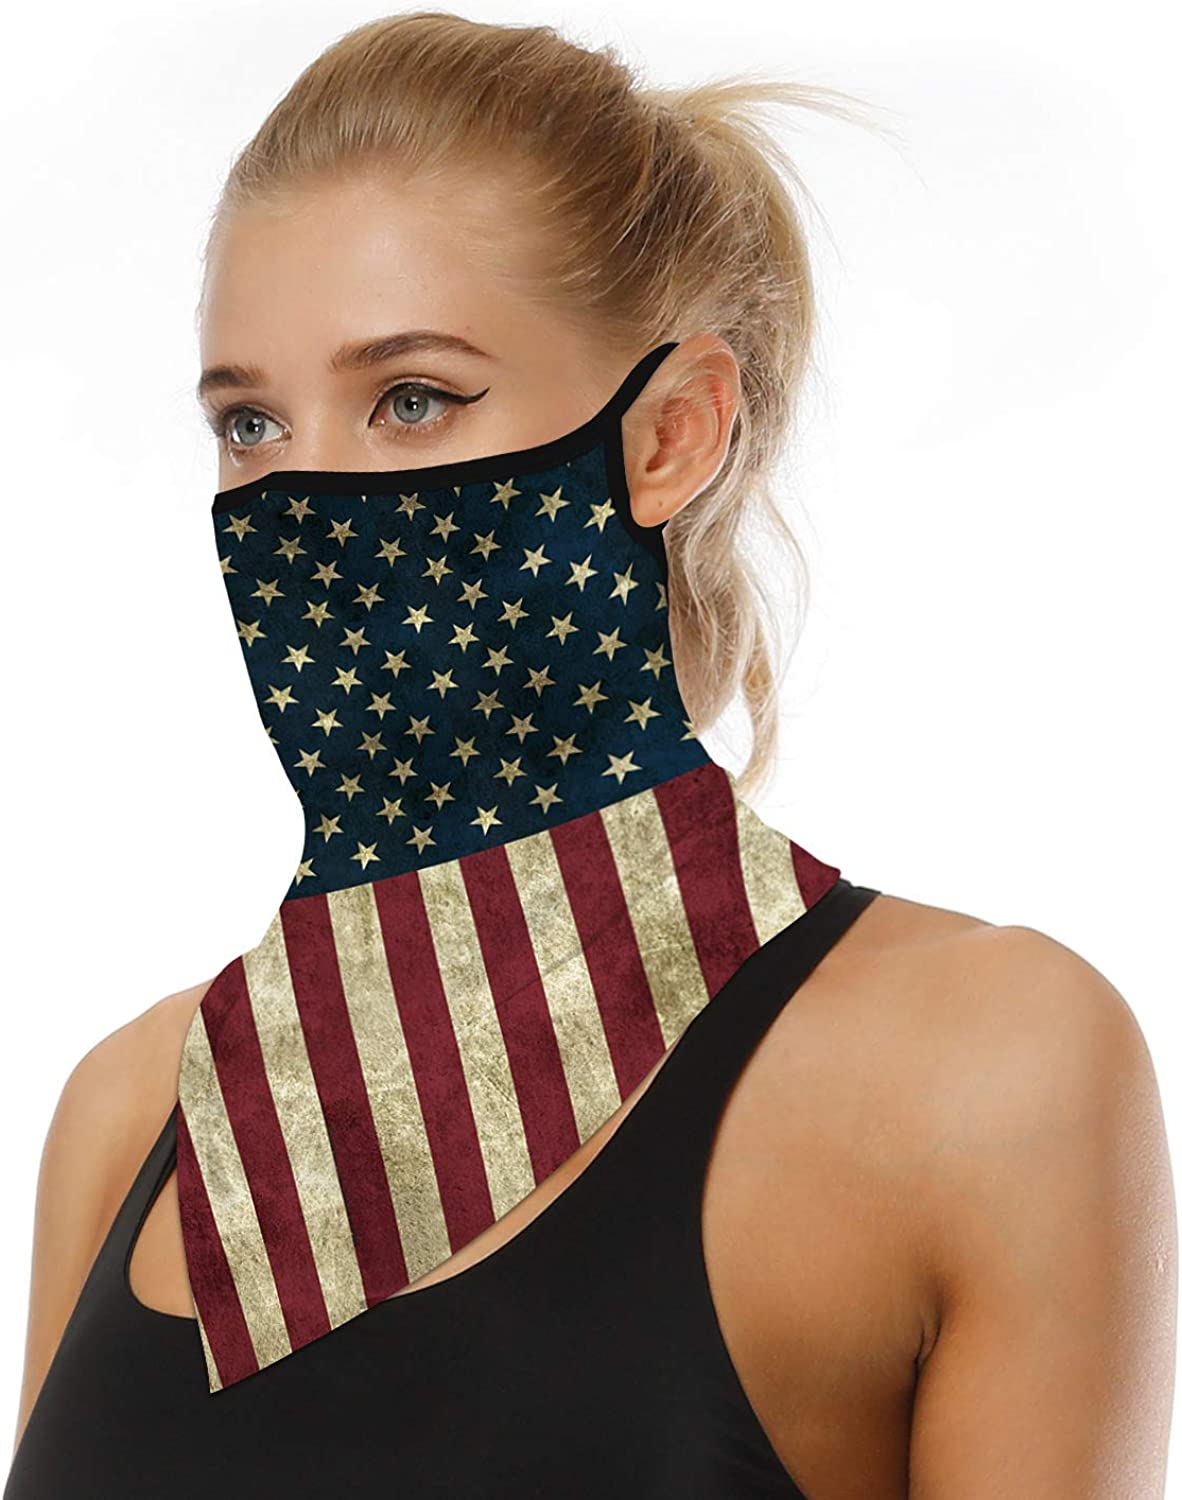 Bandana Yoga and Outdoor Sport Snood Headband Scarf Unisex Multifunctional Face Masks Reusable Washable Running Balaclavas Face Covering for Cycling Neck Gaiter